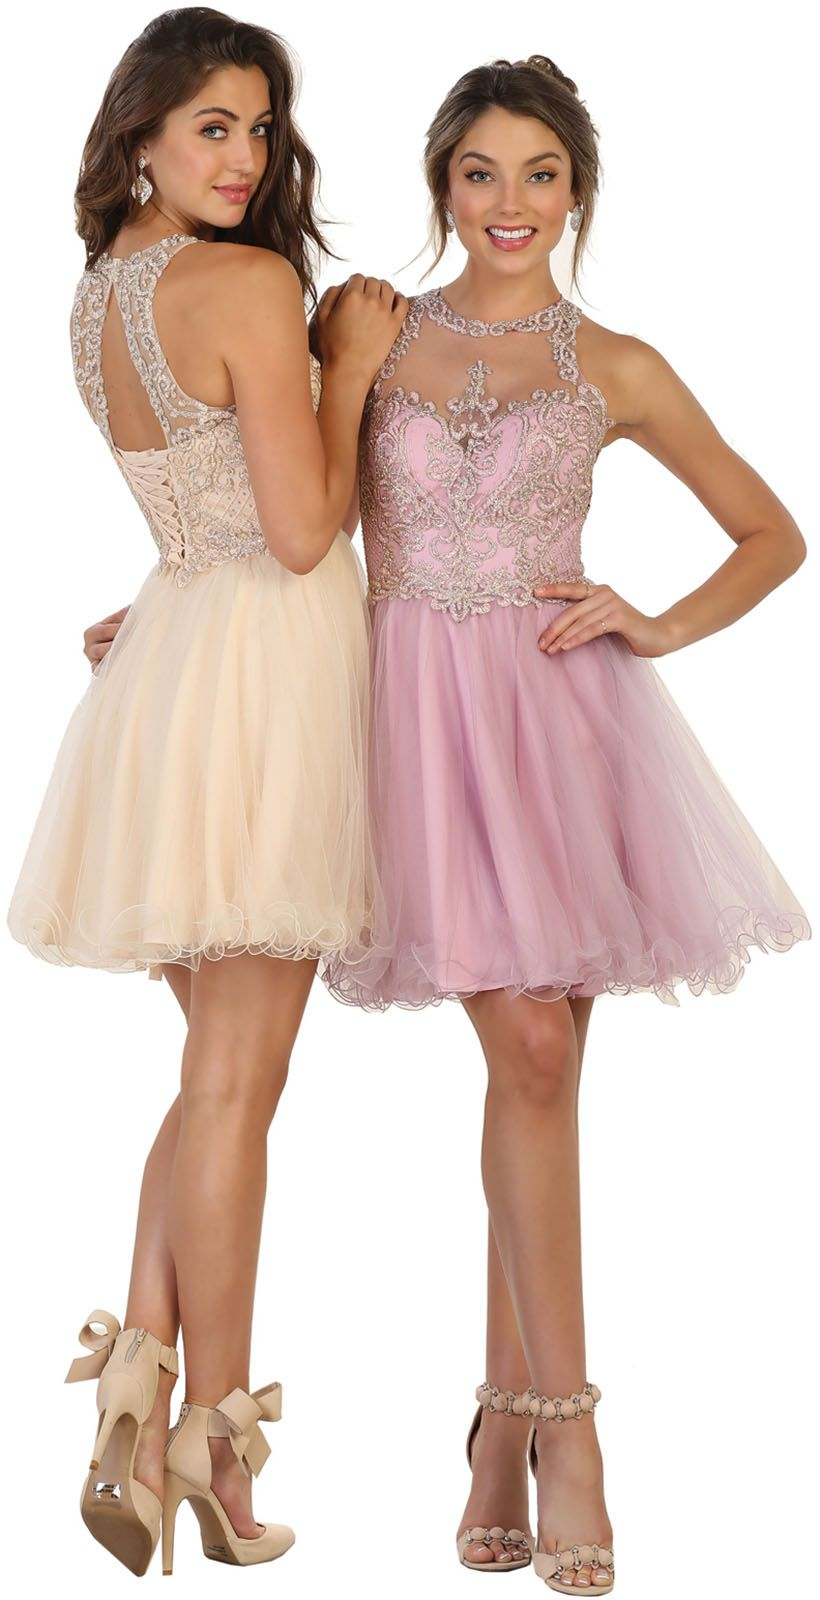 May Queen Semi Formal Lace Up Short Wedding Guest Dress Walmart Com Short Wedding Guest Dresses Sleeveless Bridesmaid Dresses Guest Dresses [ 1600 x 820 Pixel ]